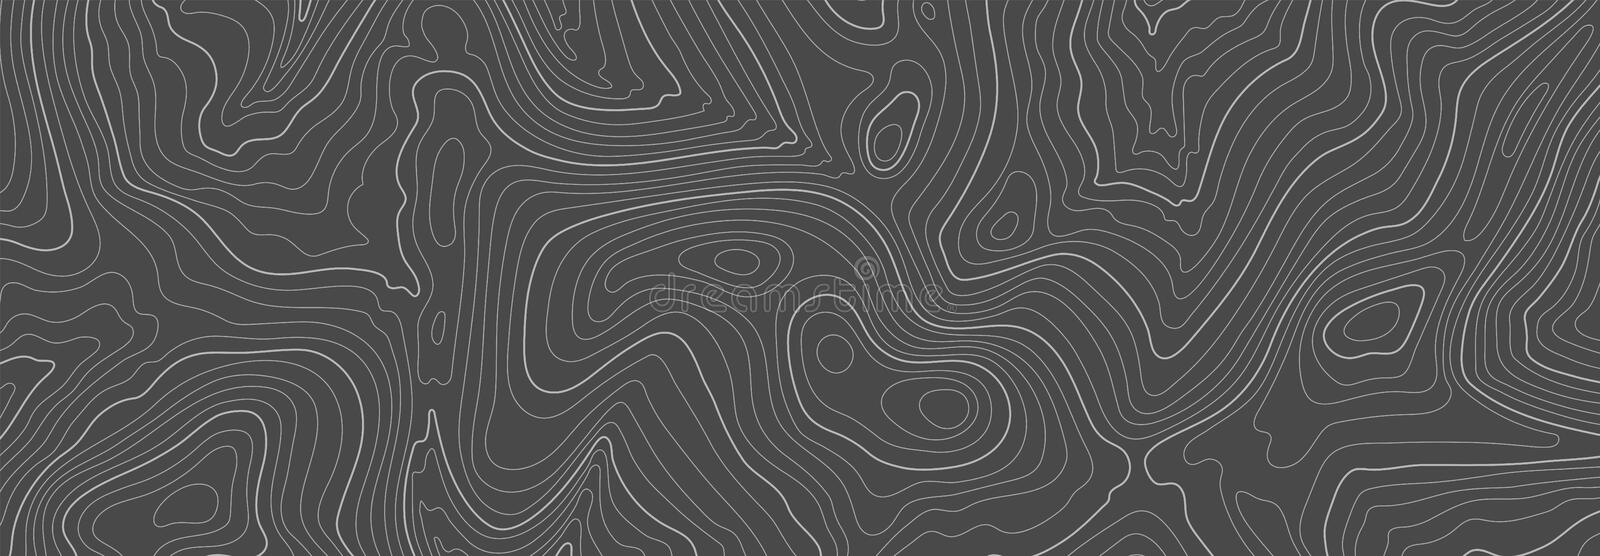 Gray topographic line contour map background, geographic grid map stock photos